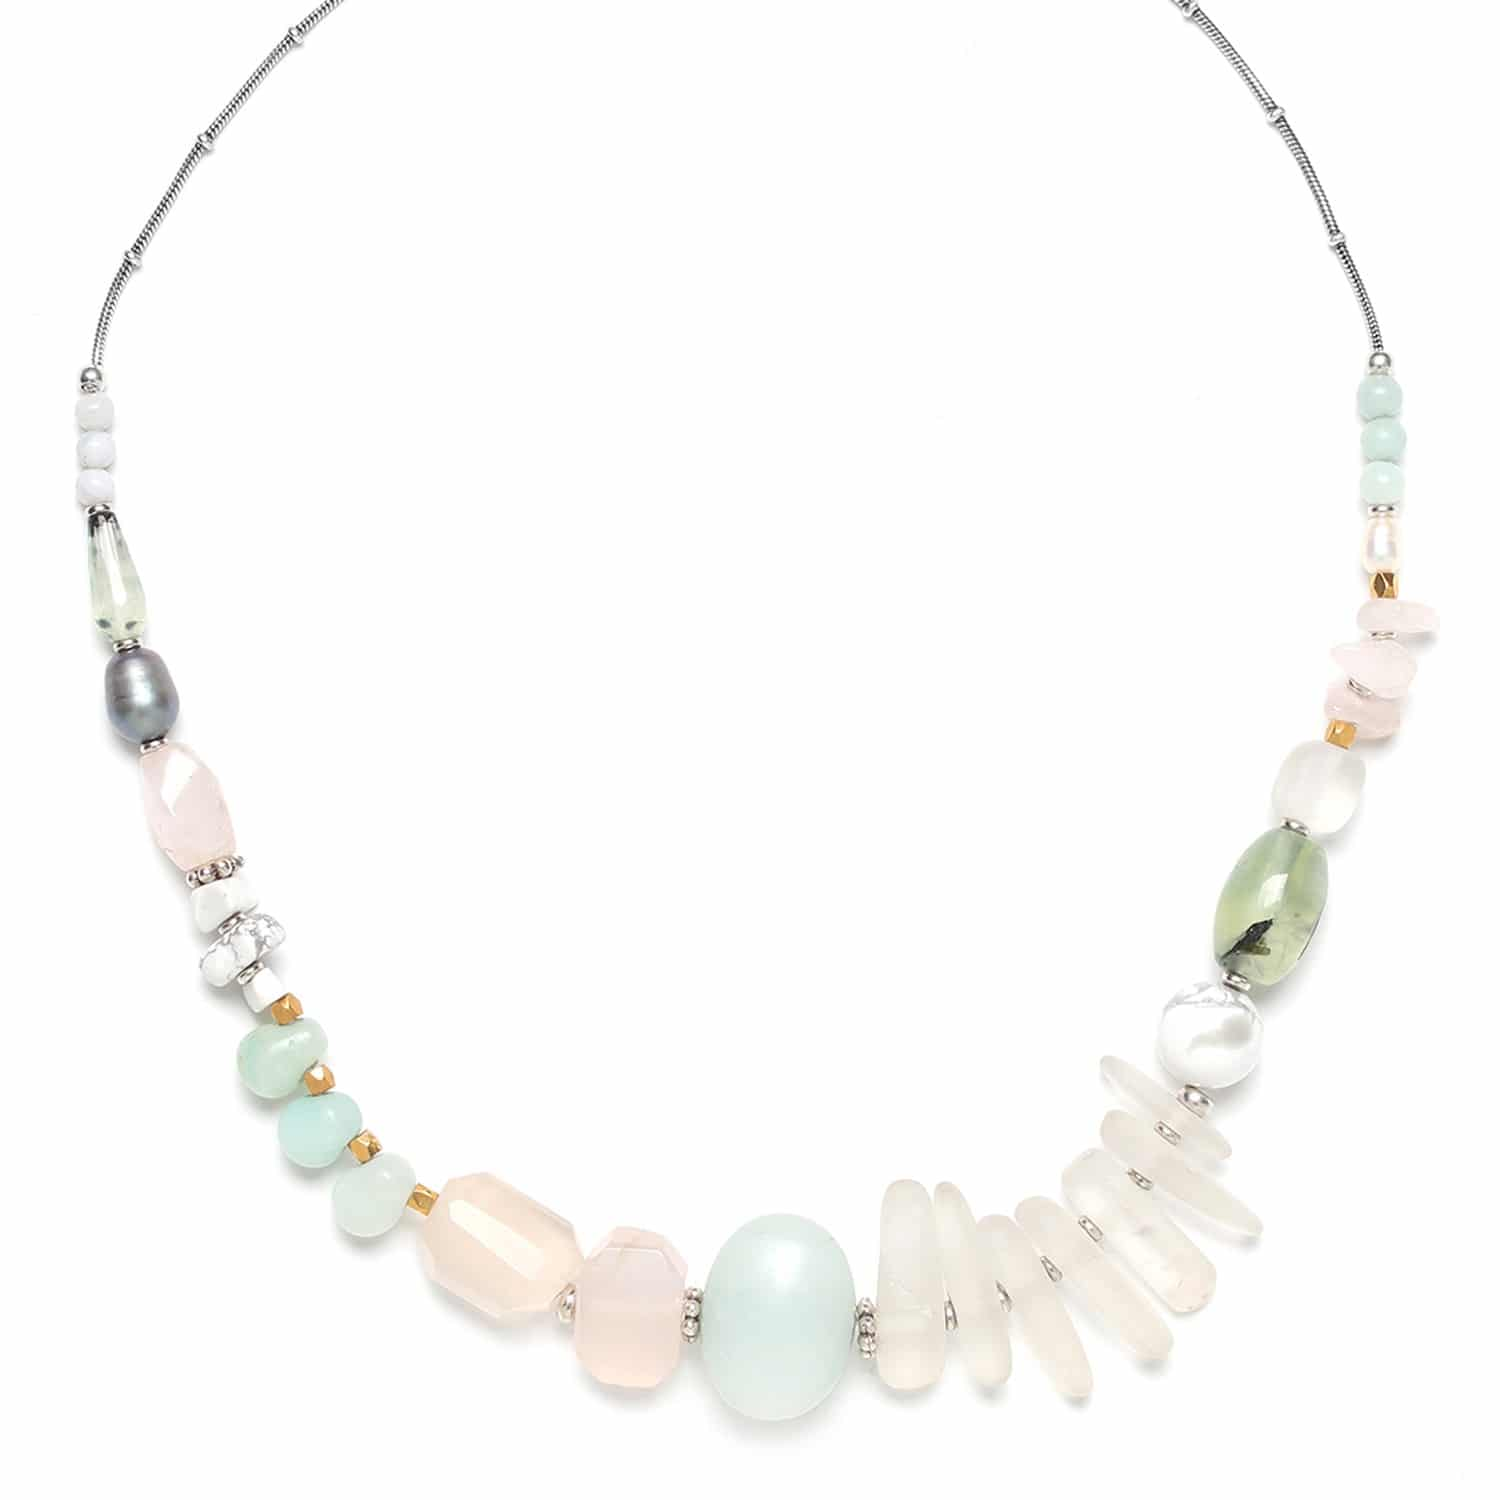 ROCK & PEARL necklace rock crystal amazonite and pink quartz